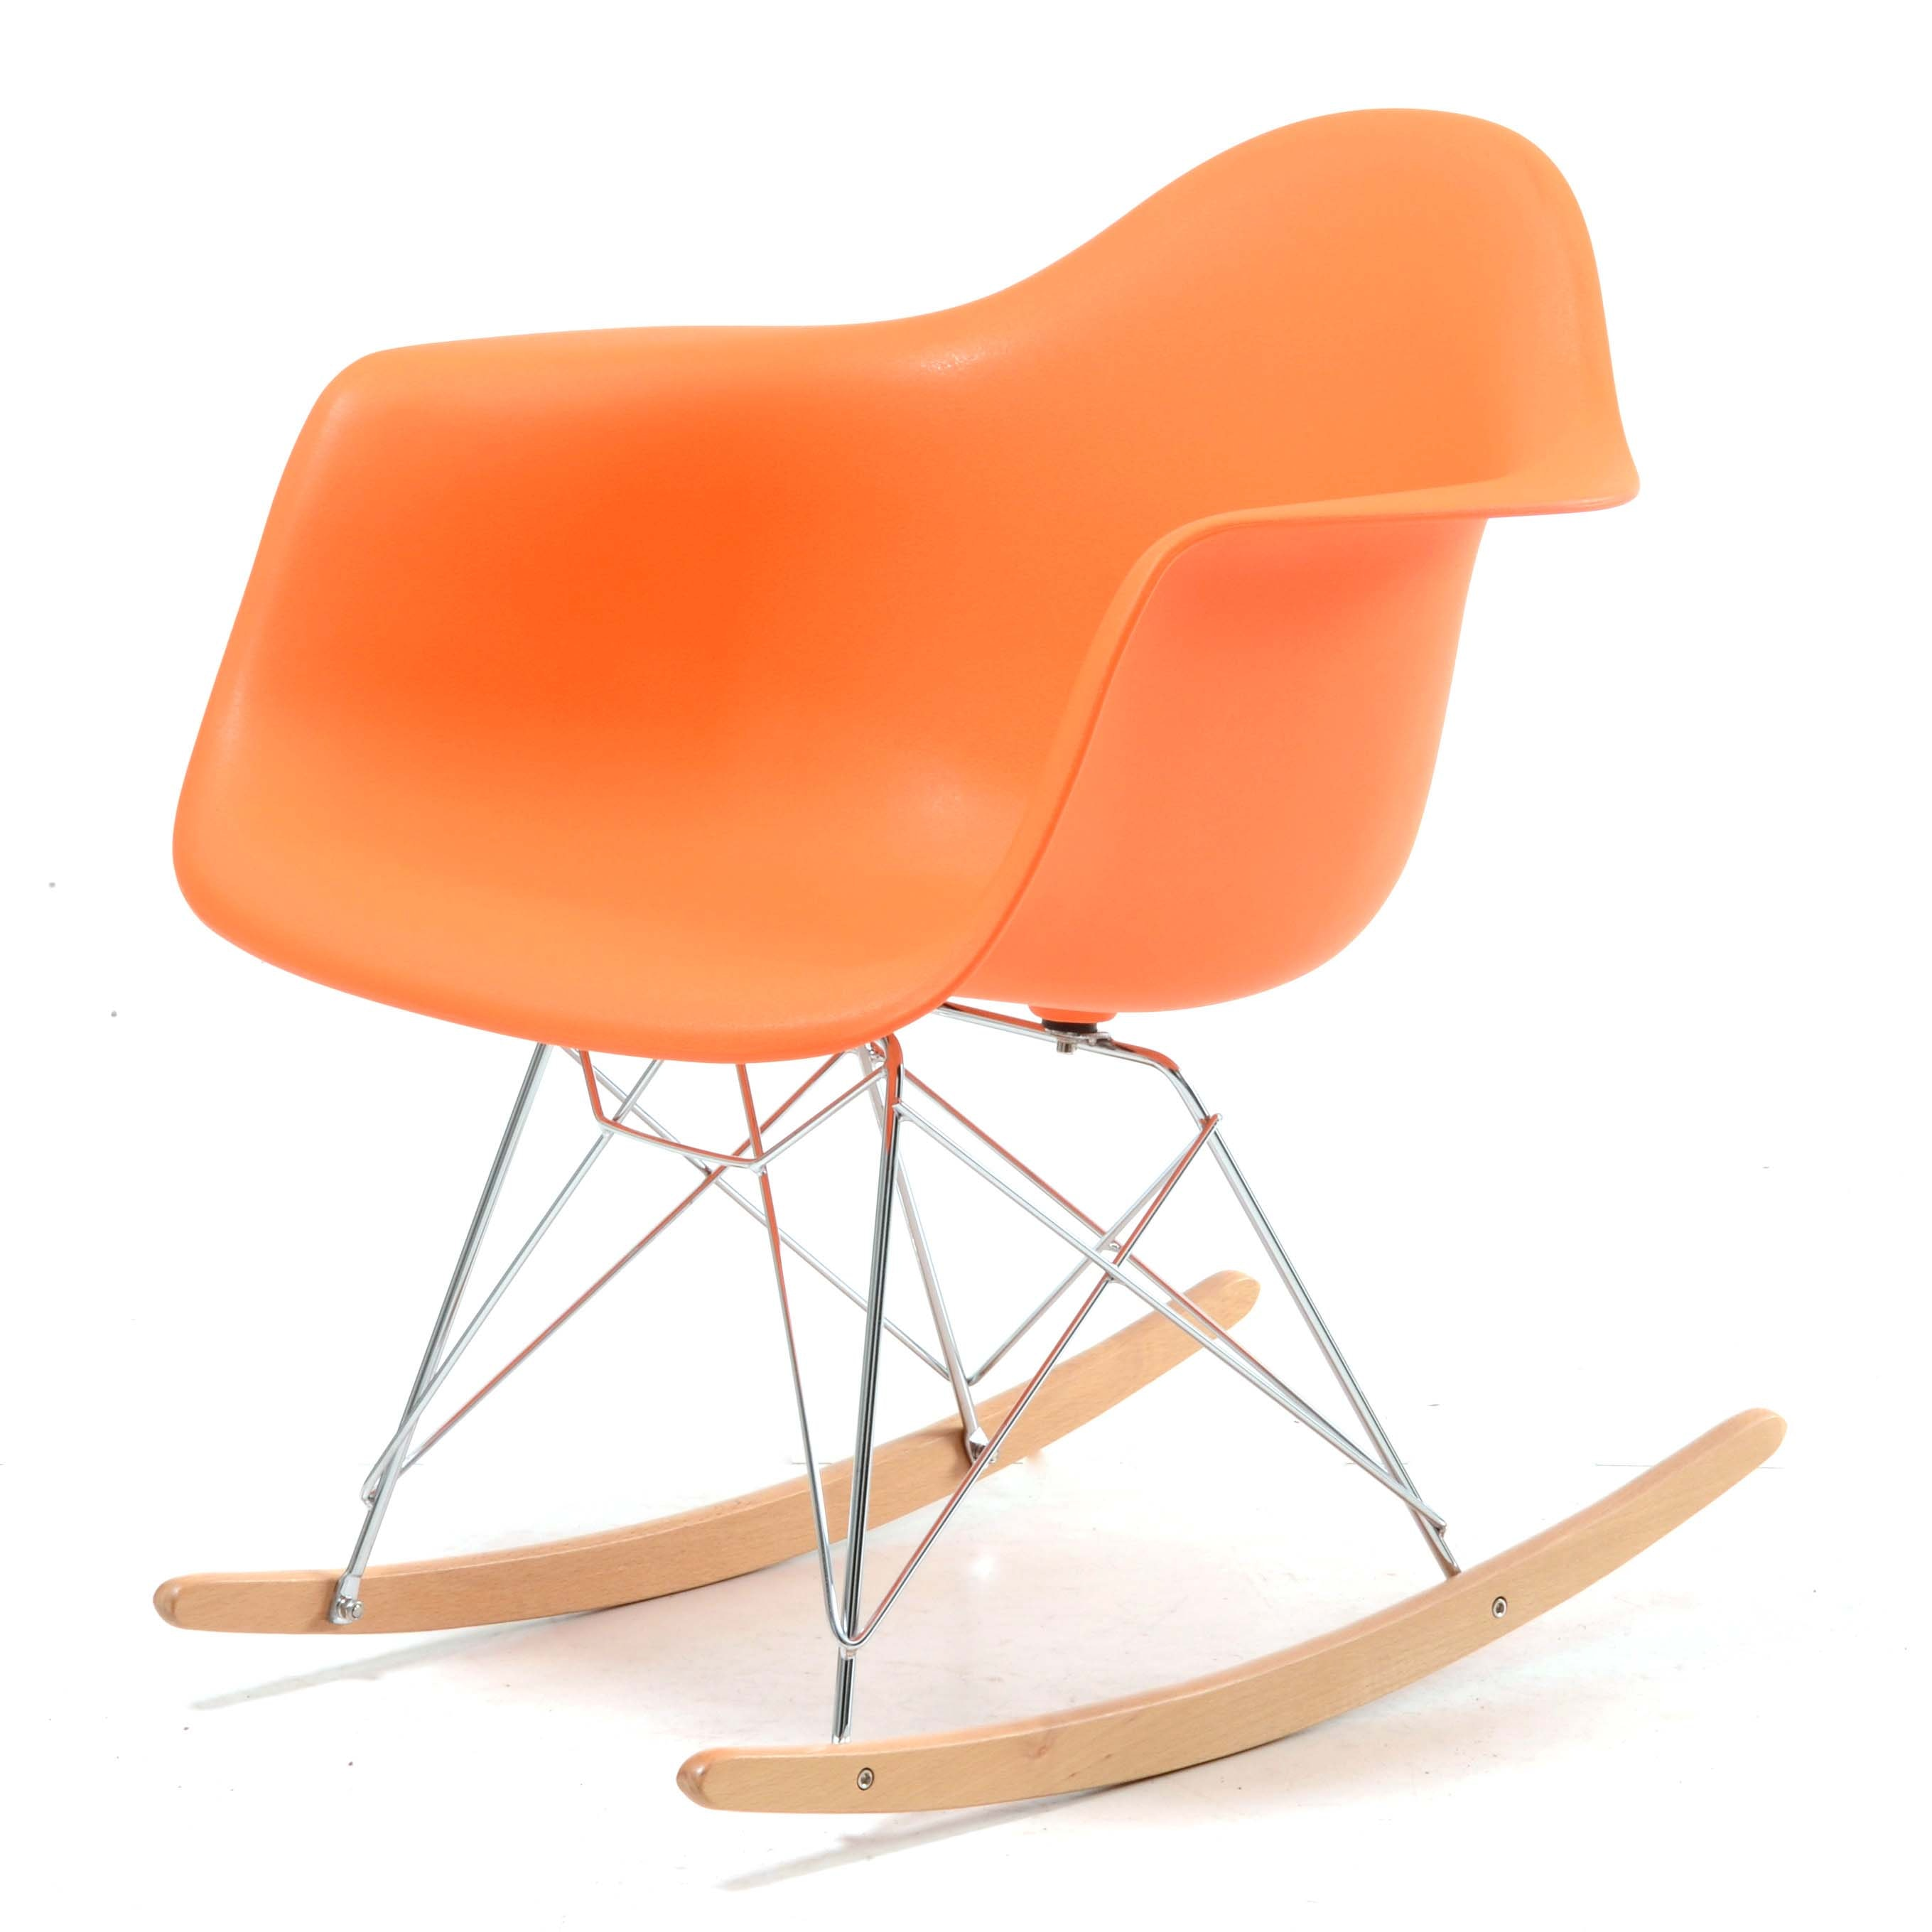 Eames Style Molded Plastic Rocking Chair